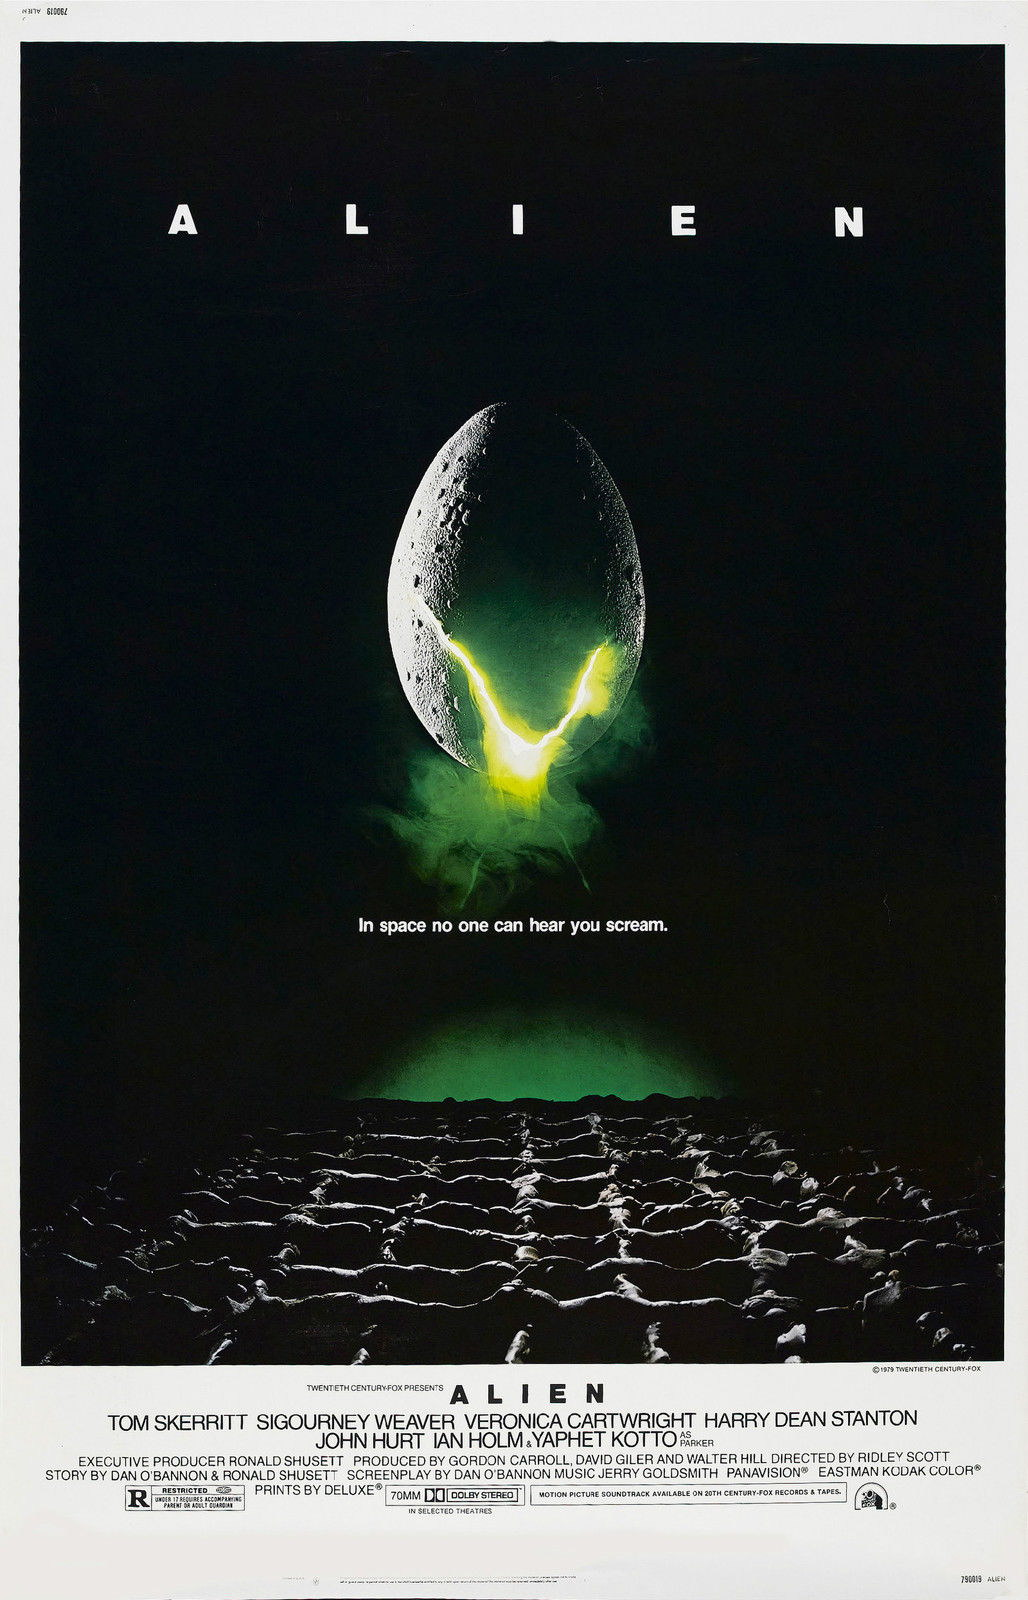 72177-ALIEN-1979-Movie-Sci-Fi-Horror-Ridley-Scott-Wall-Print-Poster-Affiche